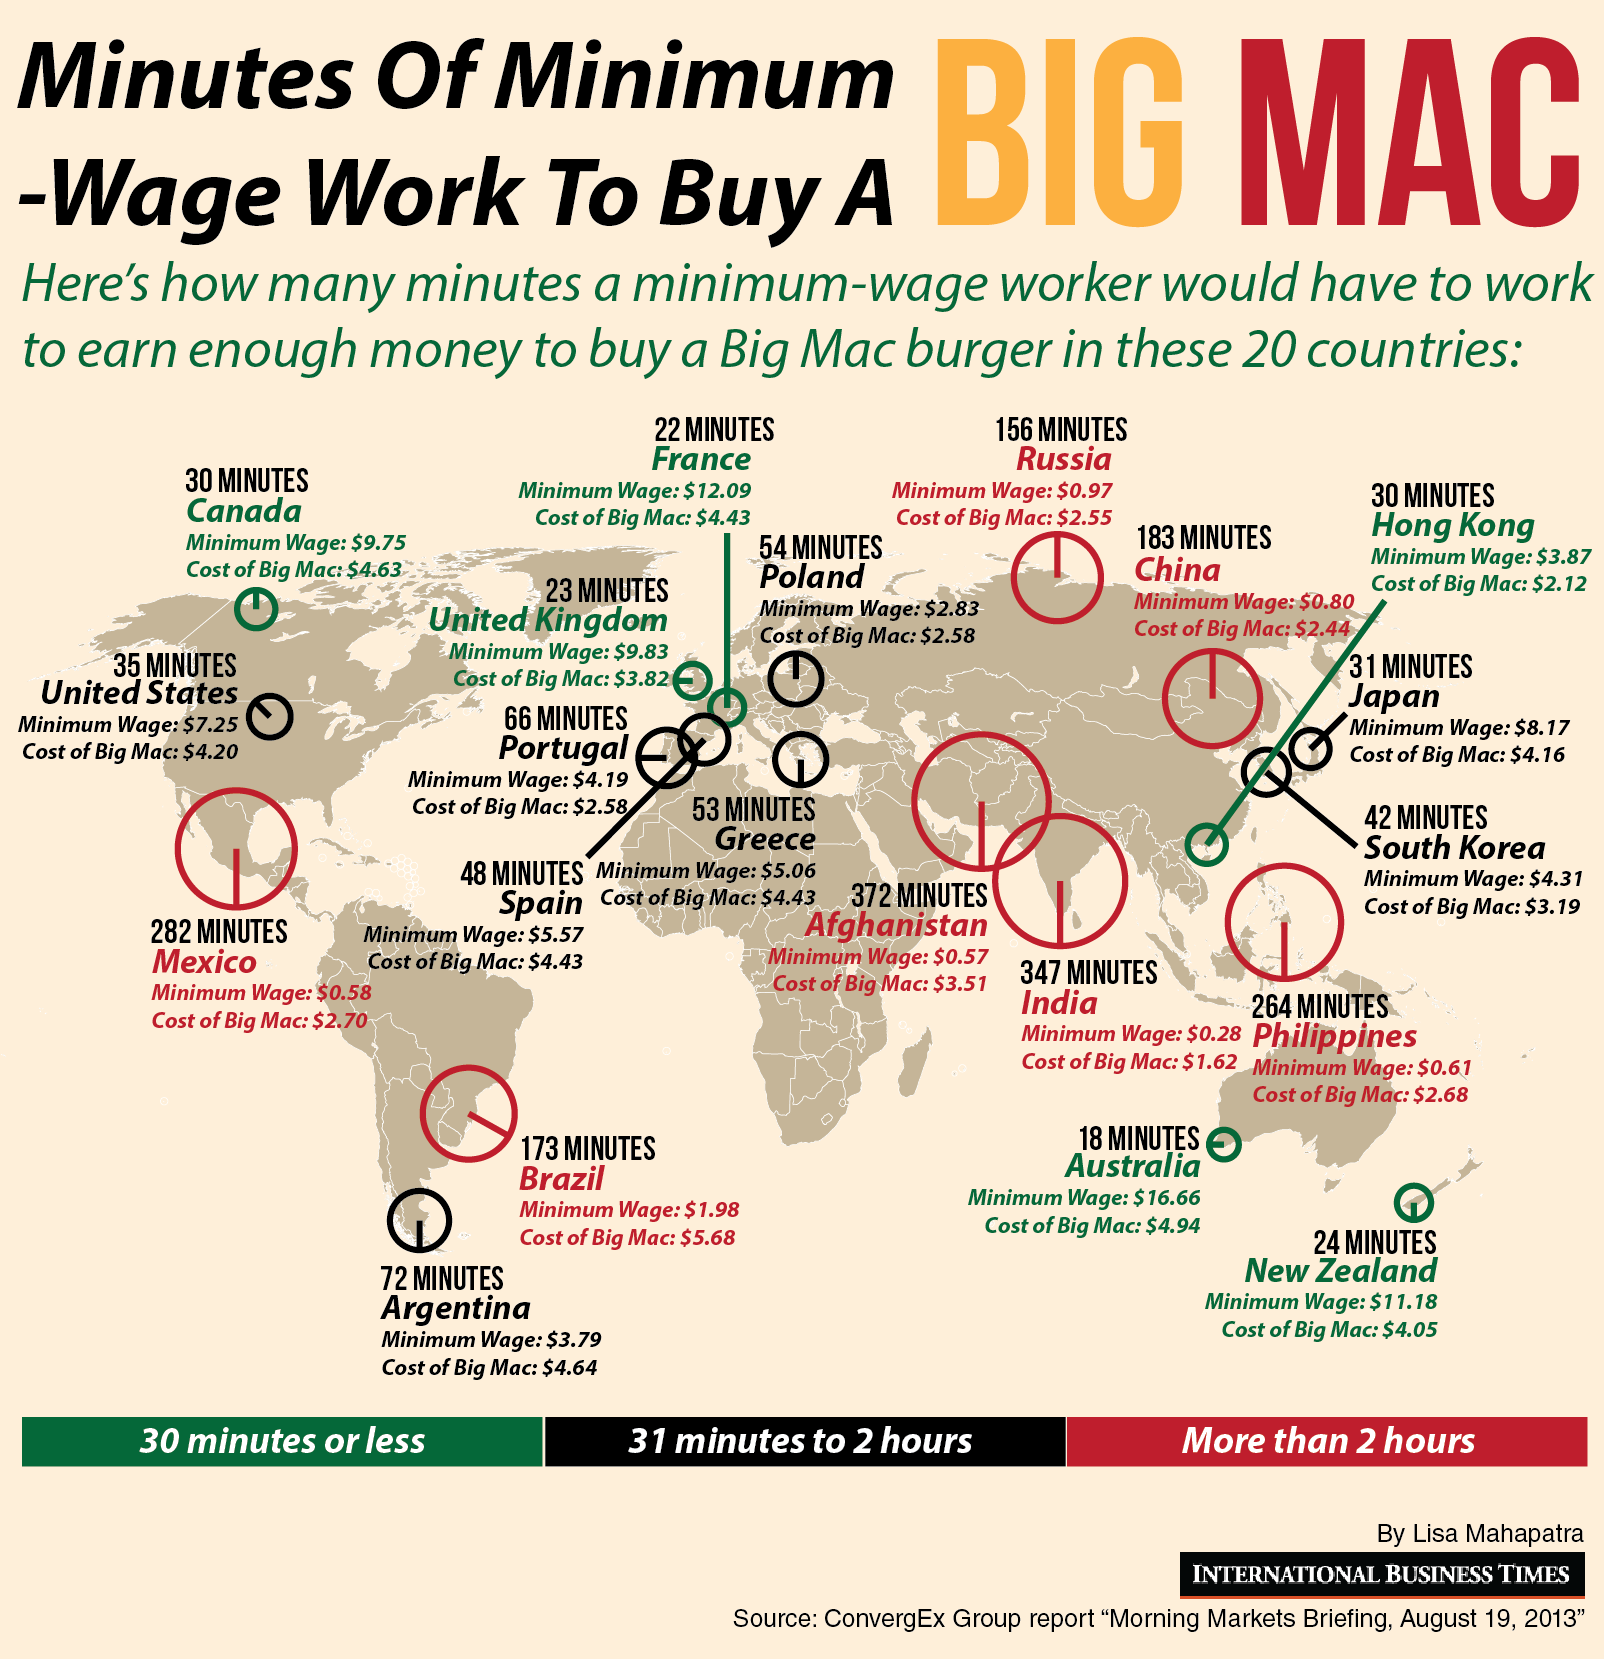 Just 18 minutes of minimum wage work in australia earns you a big just 18 minutes of minimum wage work in australia earns you a big mac but gumiabroncs Image collections